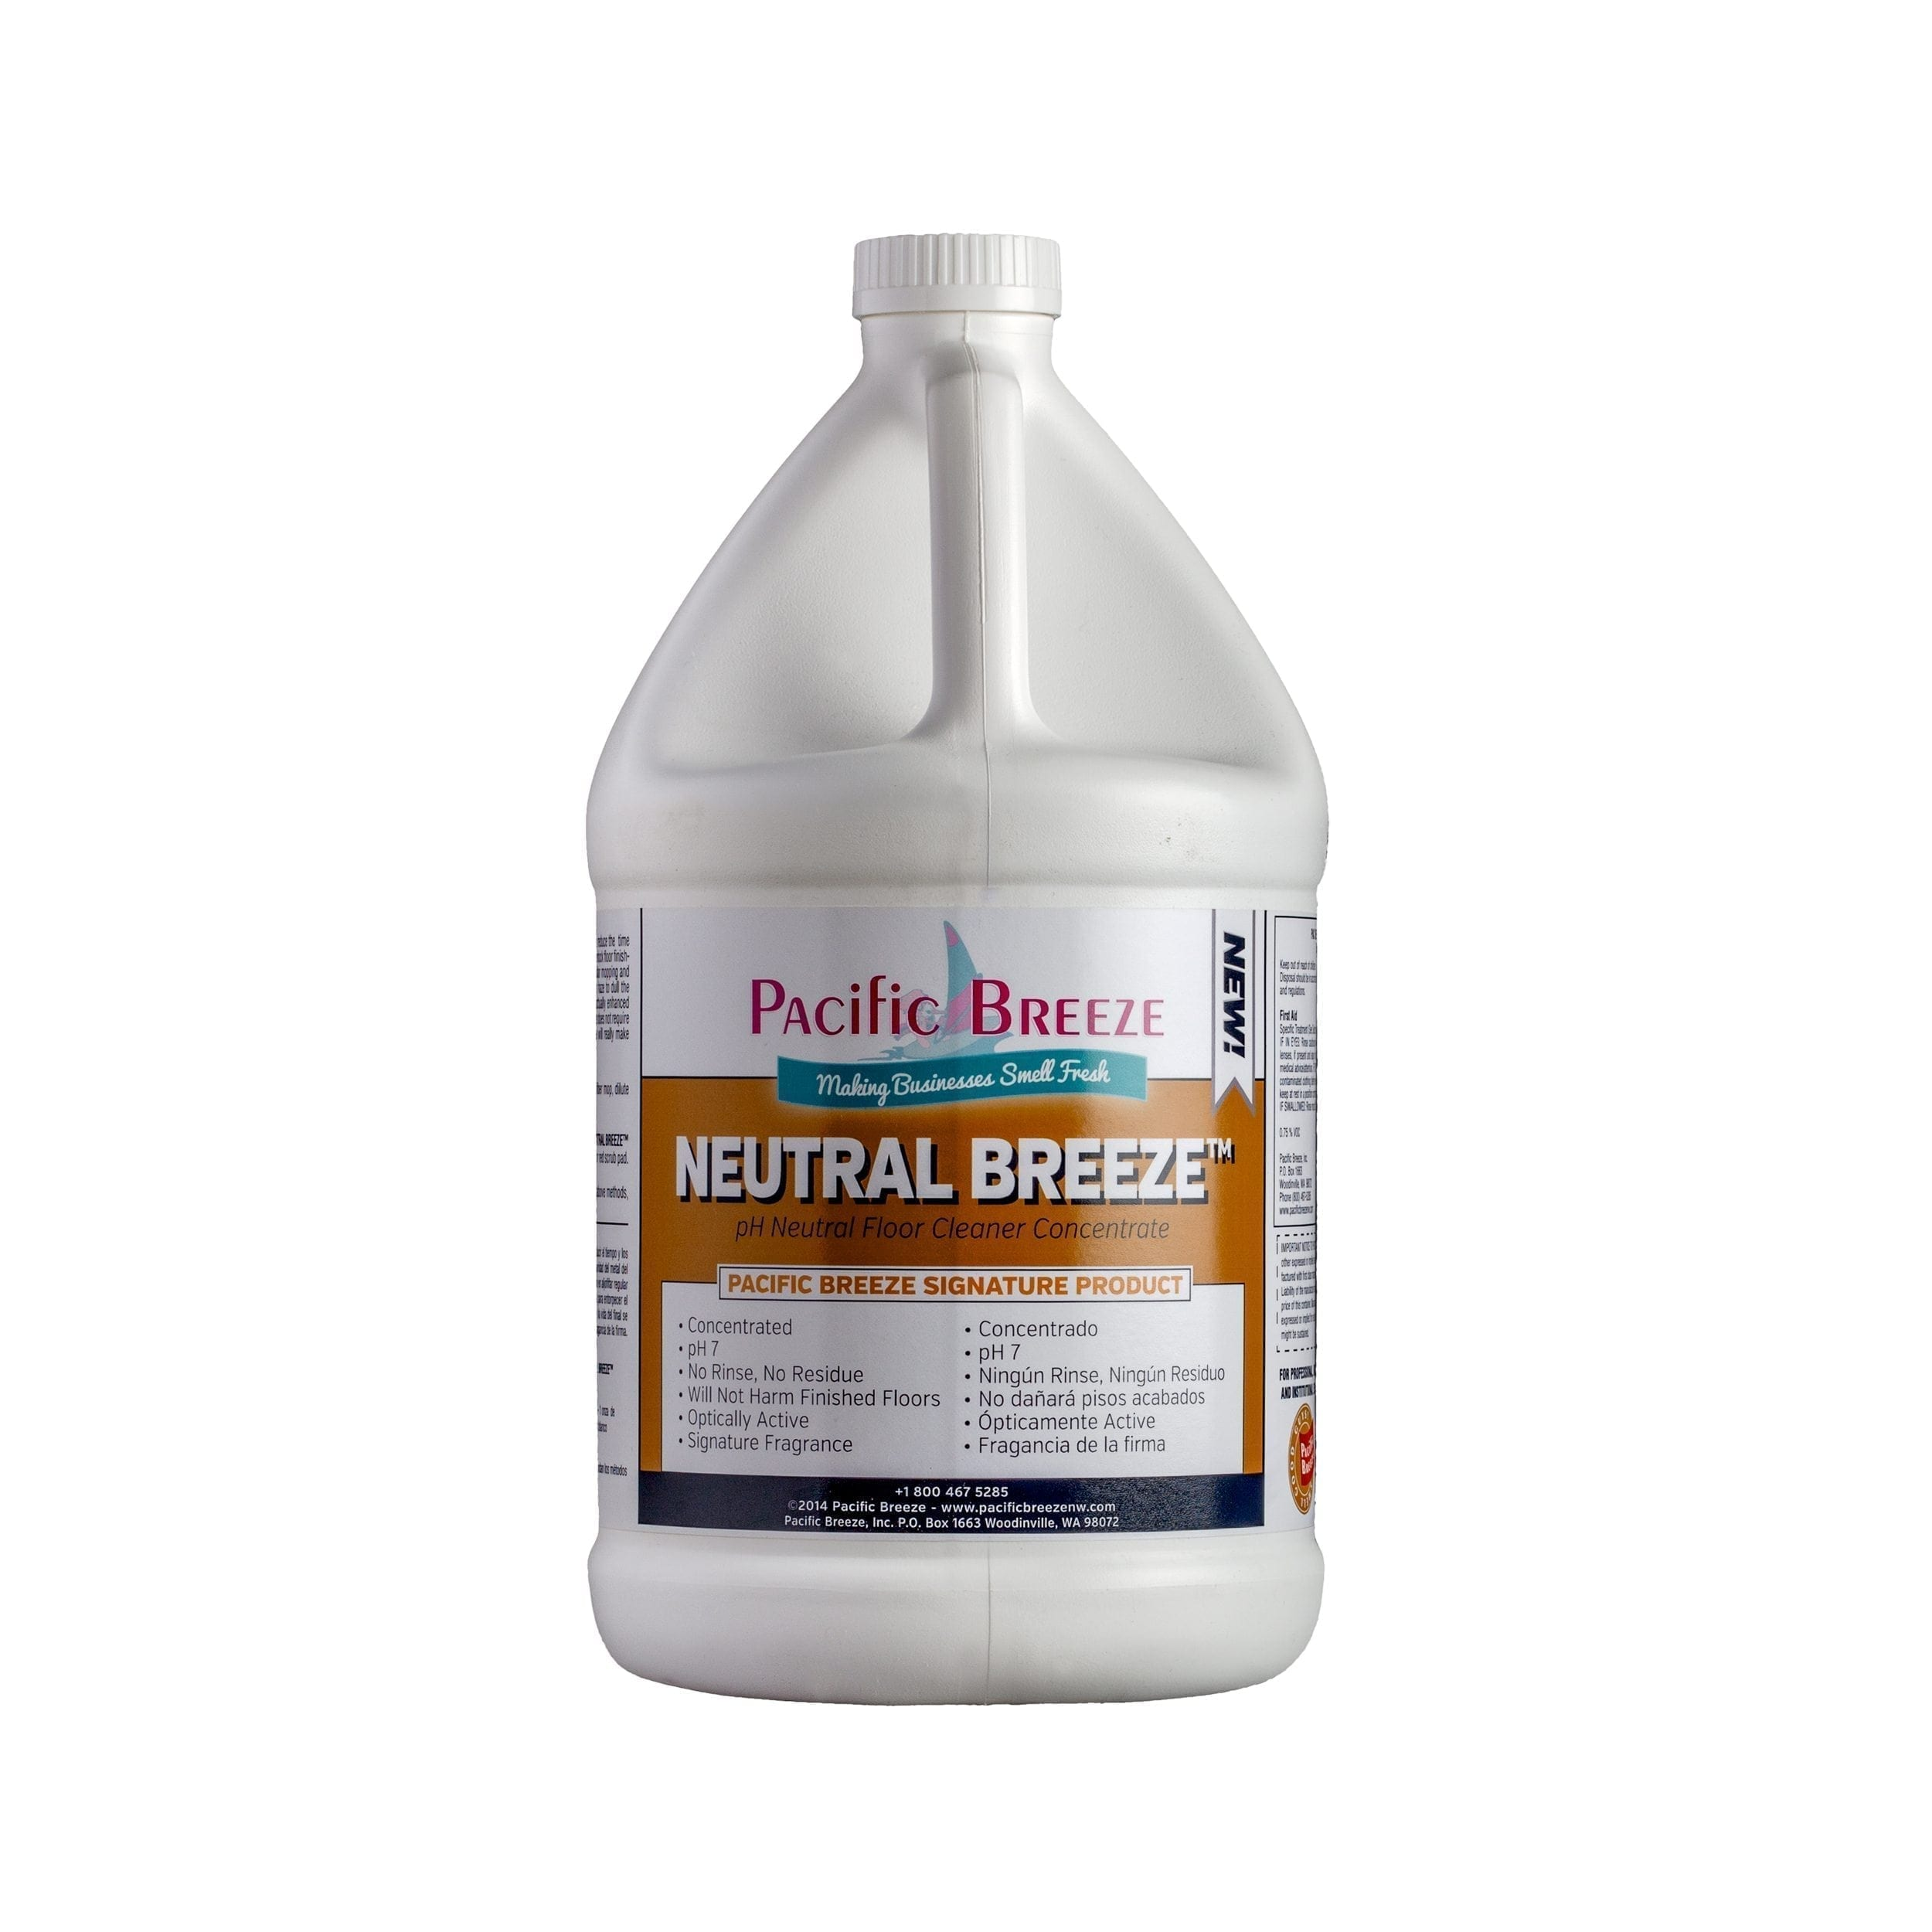 Neutral Breeze Ph Neutral Floor Cleaner Concentrate